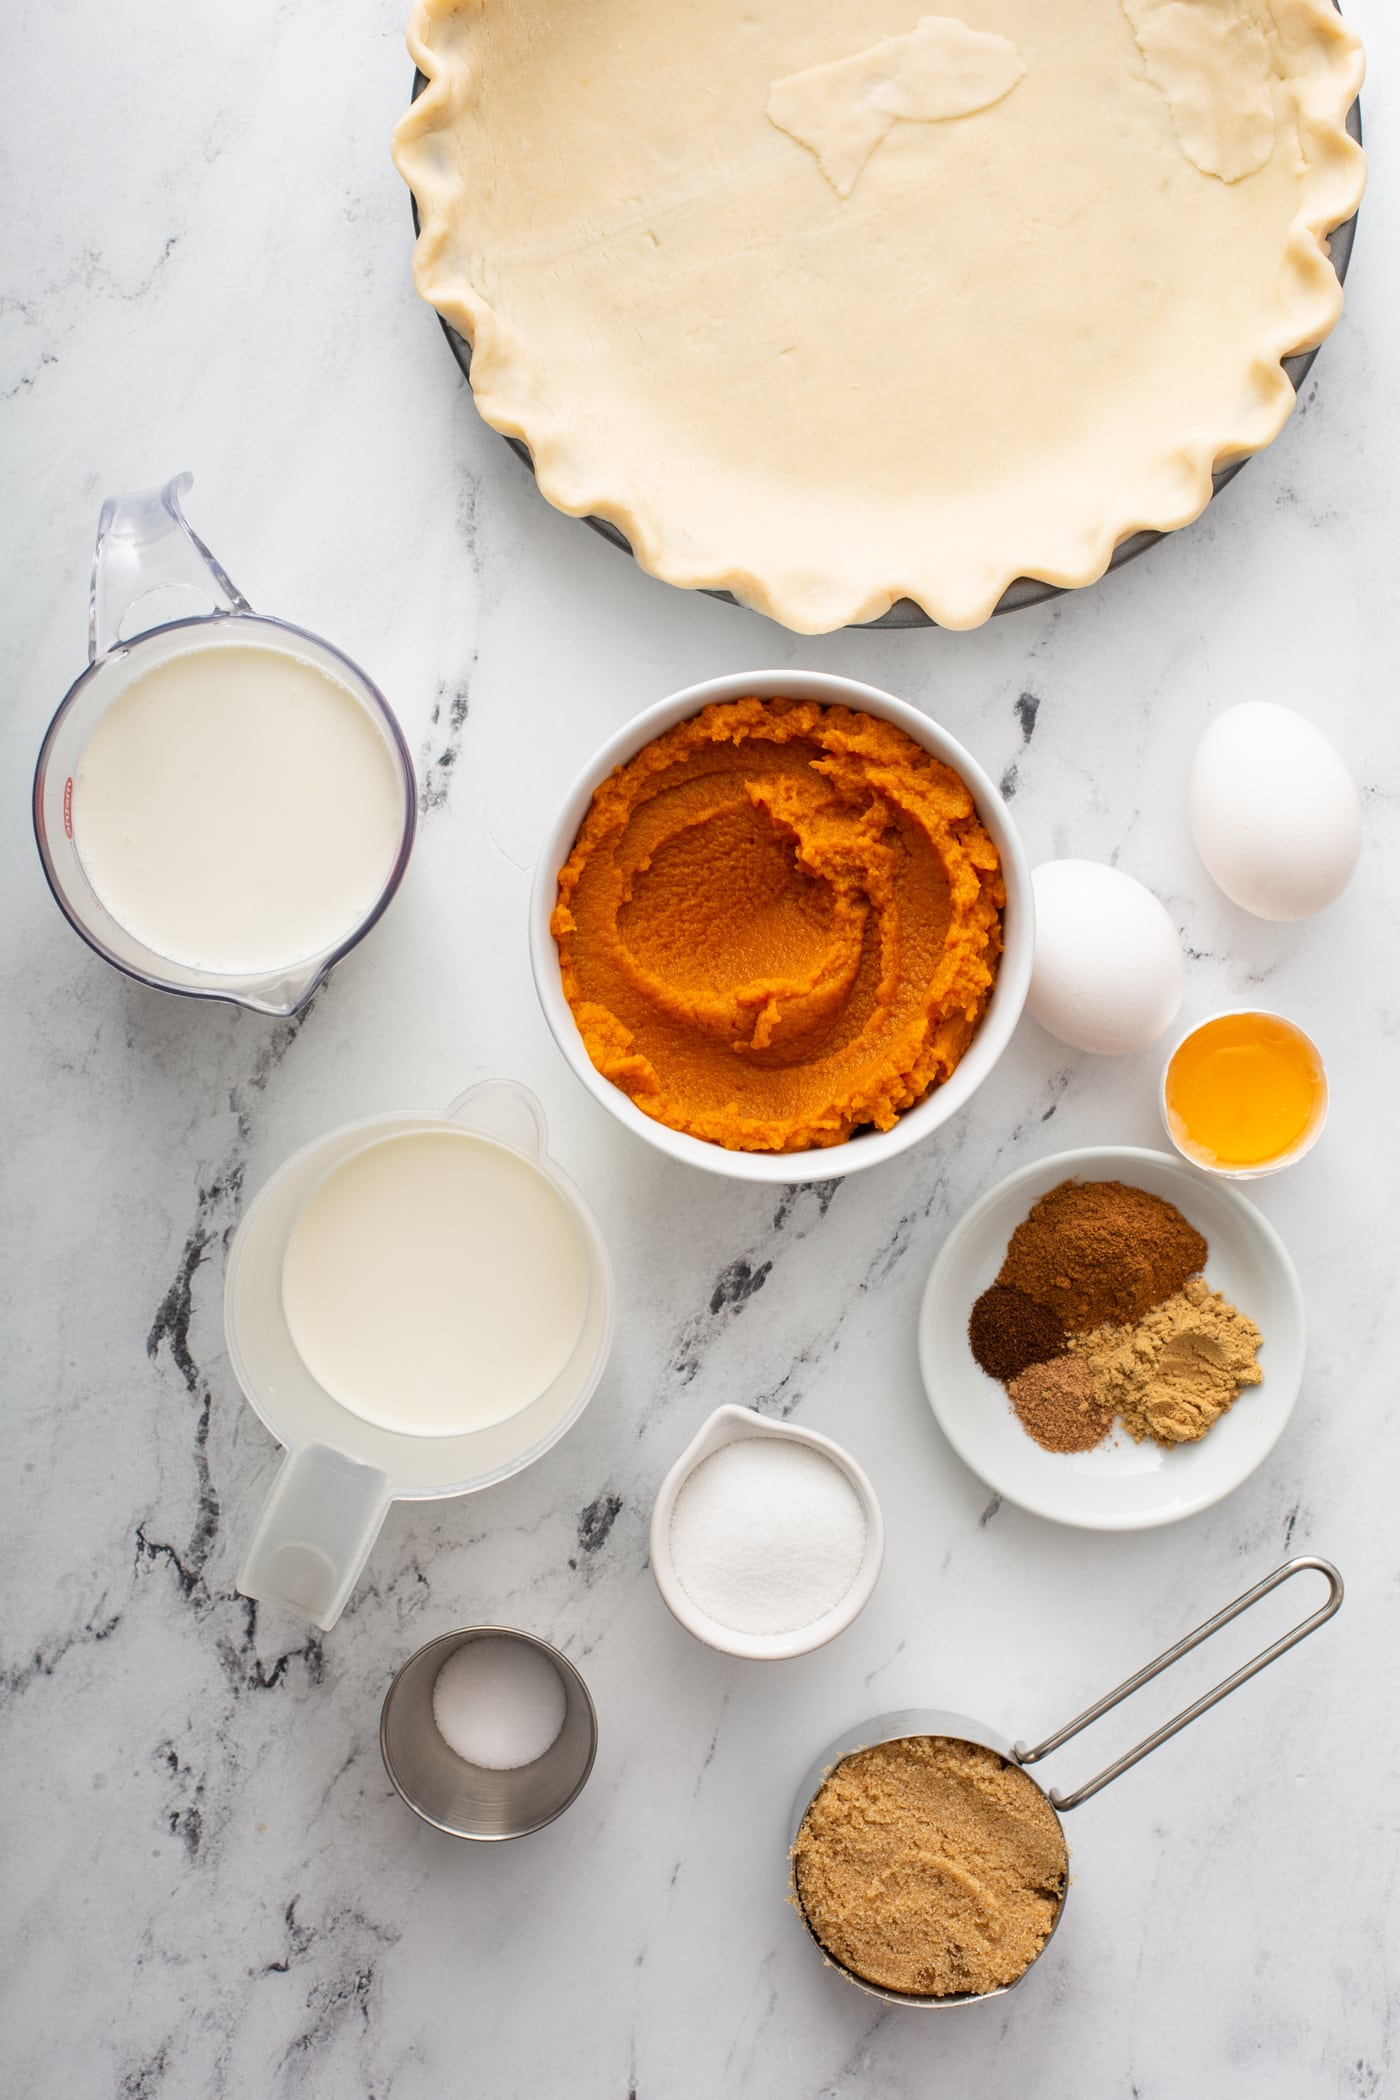 A photo of all the ingredients needed for homemade pumpkin pie.